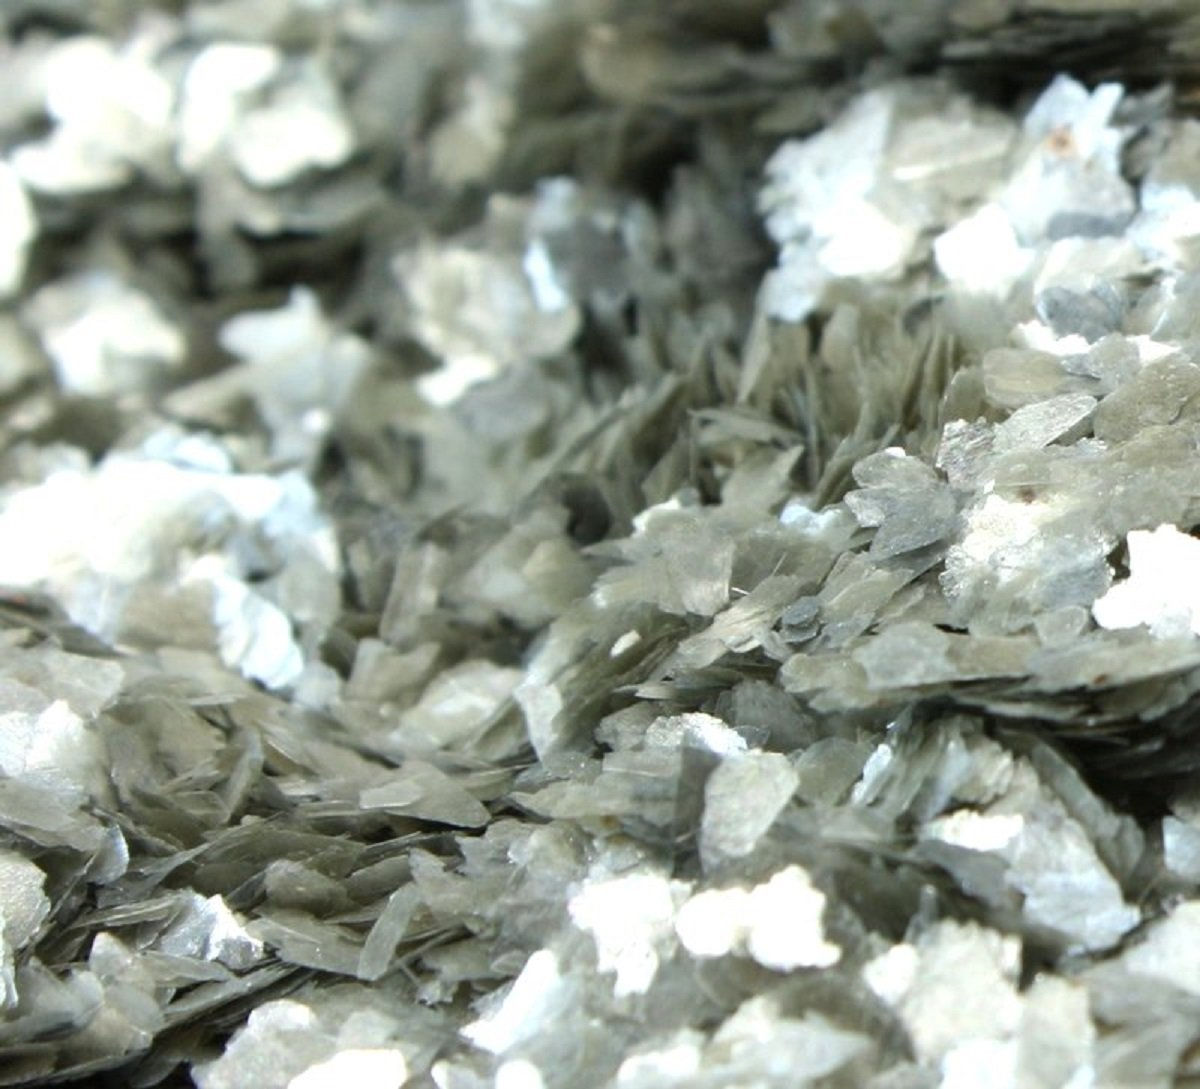 Meyer Imports Natural Mica Flakes - Silver Med - 4 oz - #311-4321 by Meyer Imports (Image #1)